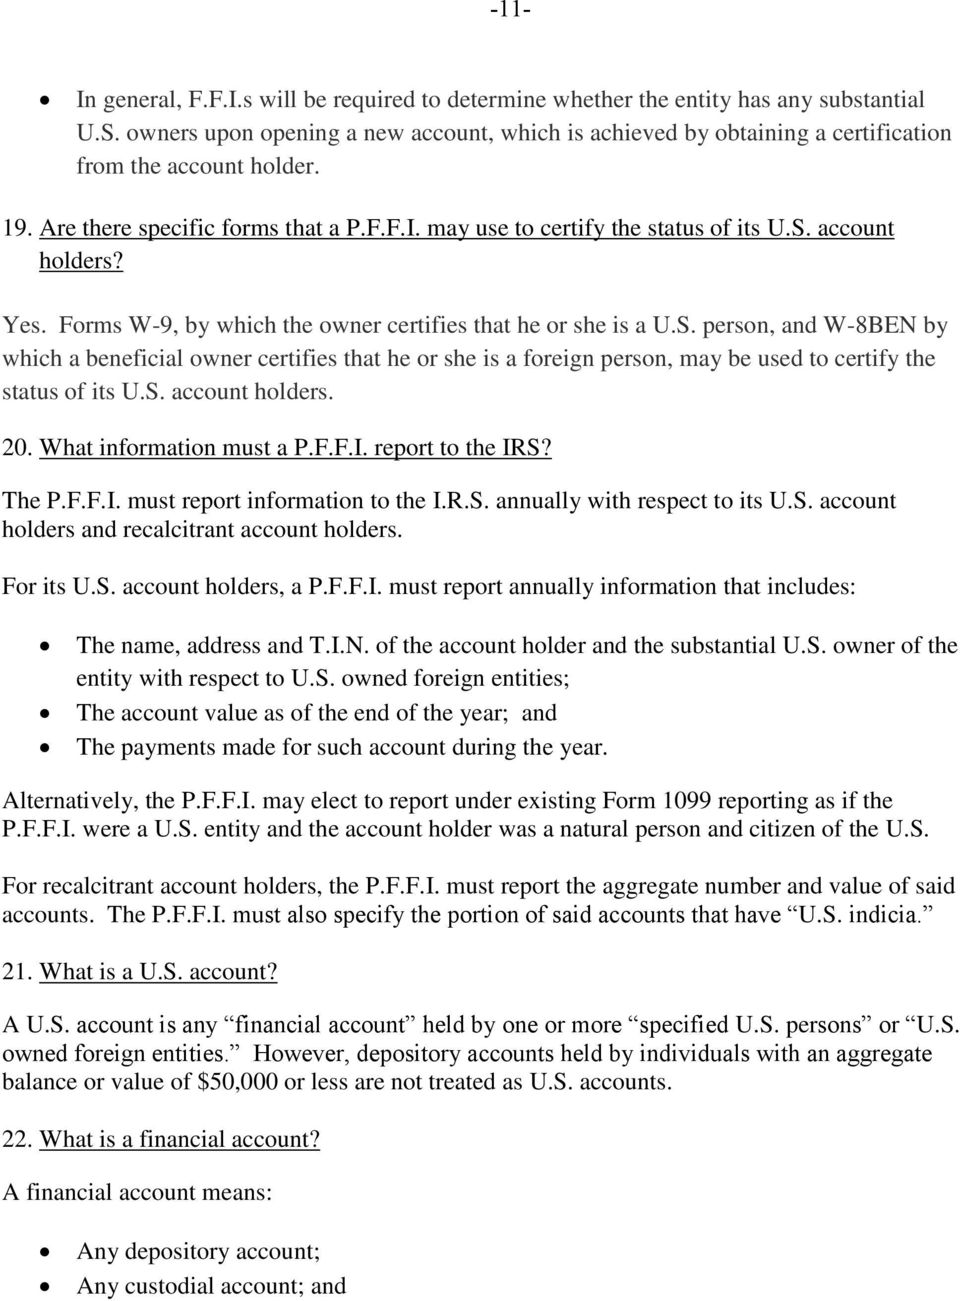 Fatca In A Nutshell Questions And Answers To Tickle The Fancy